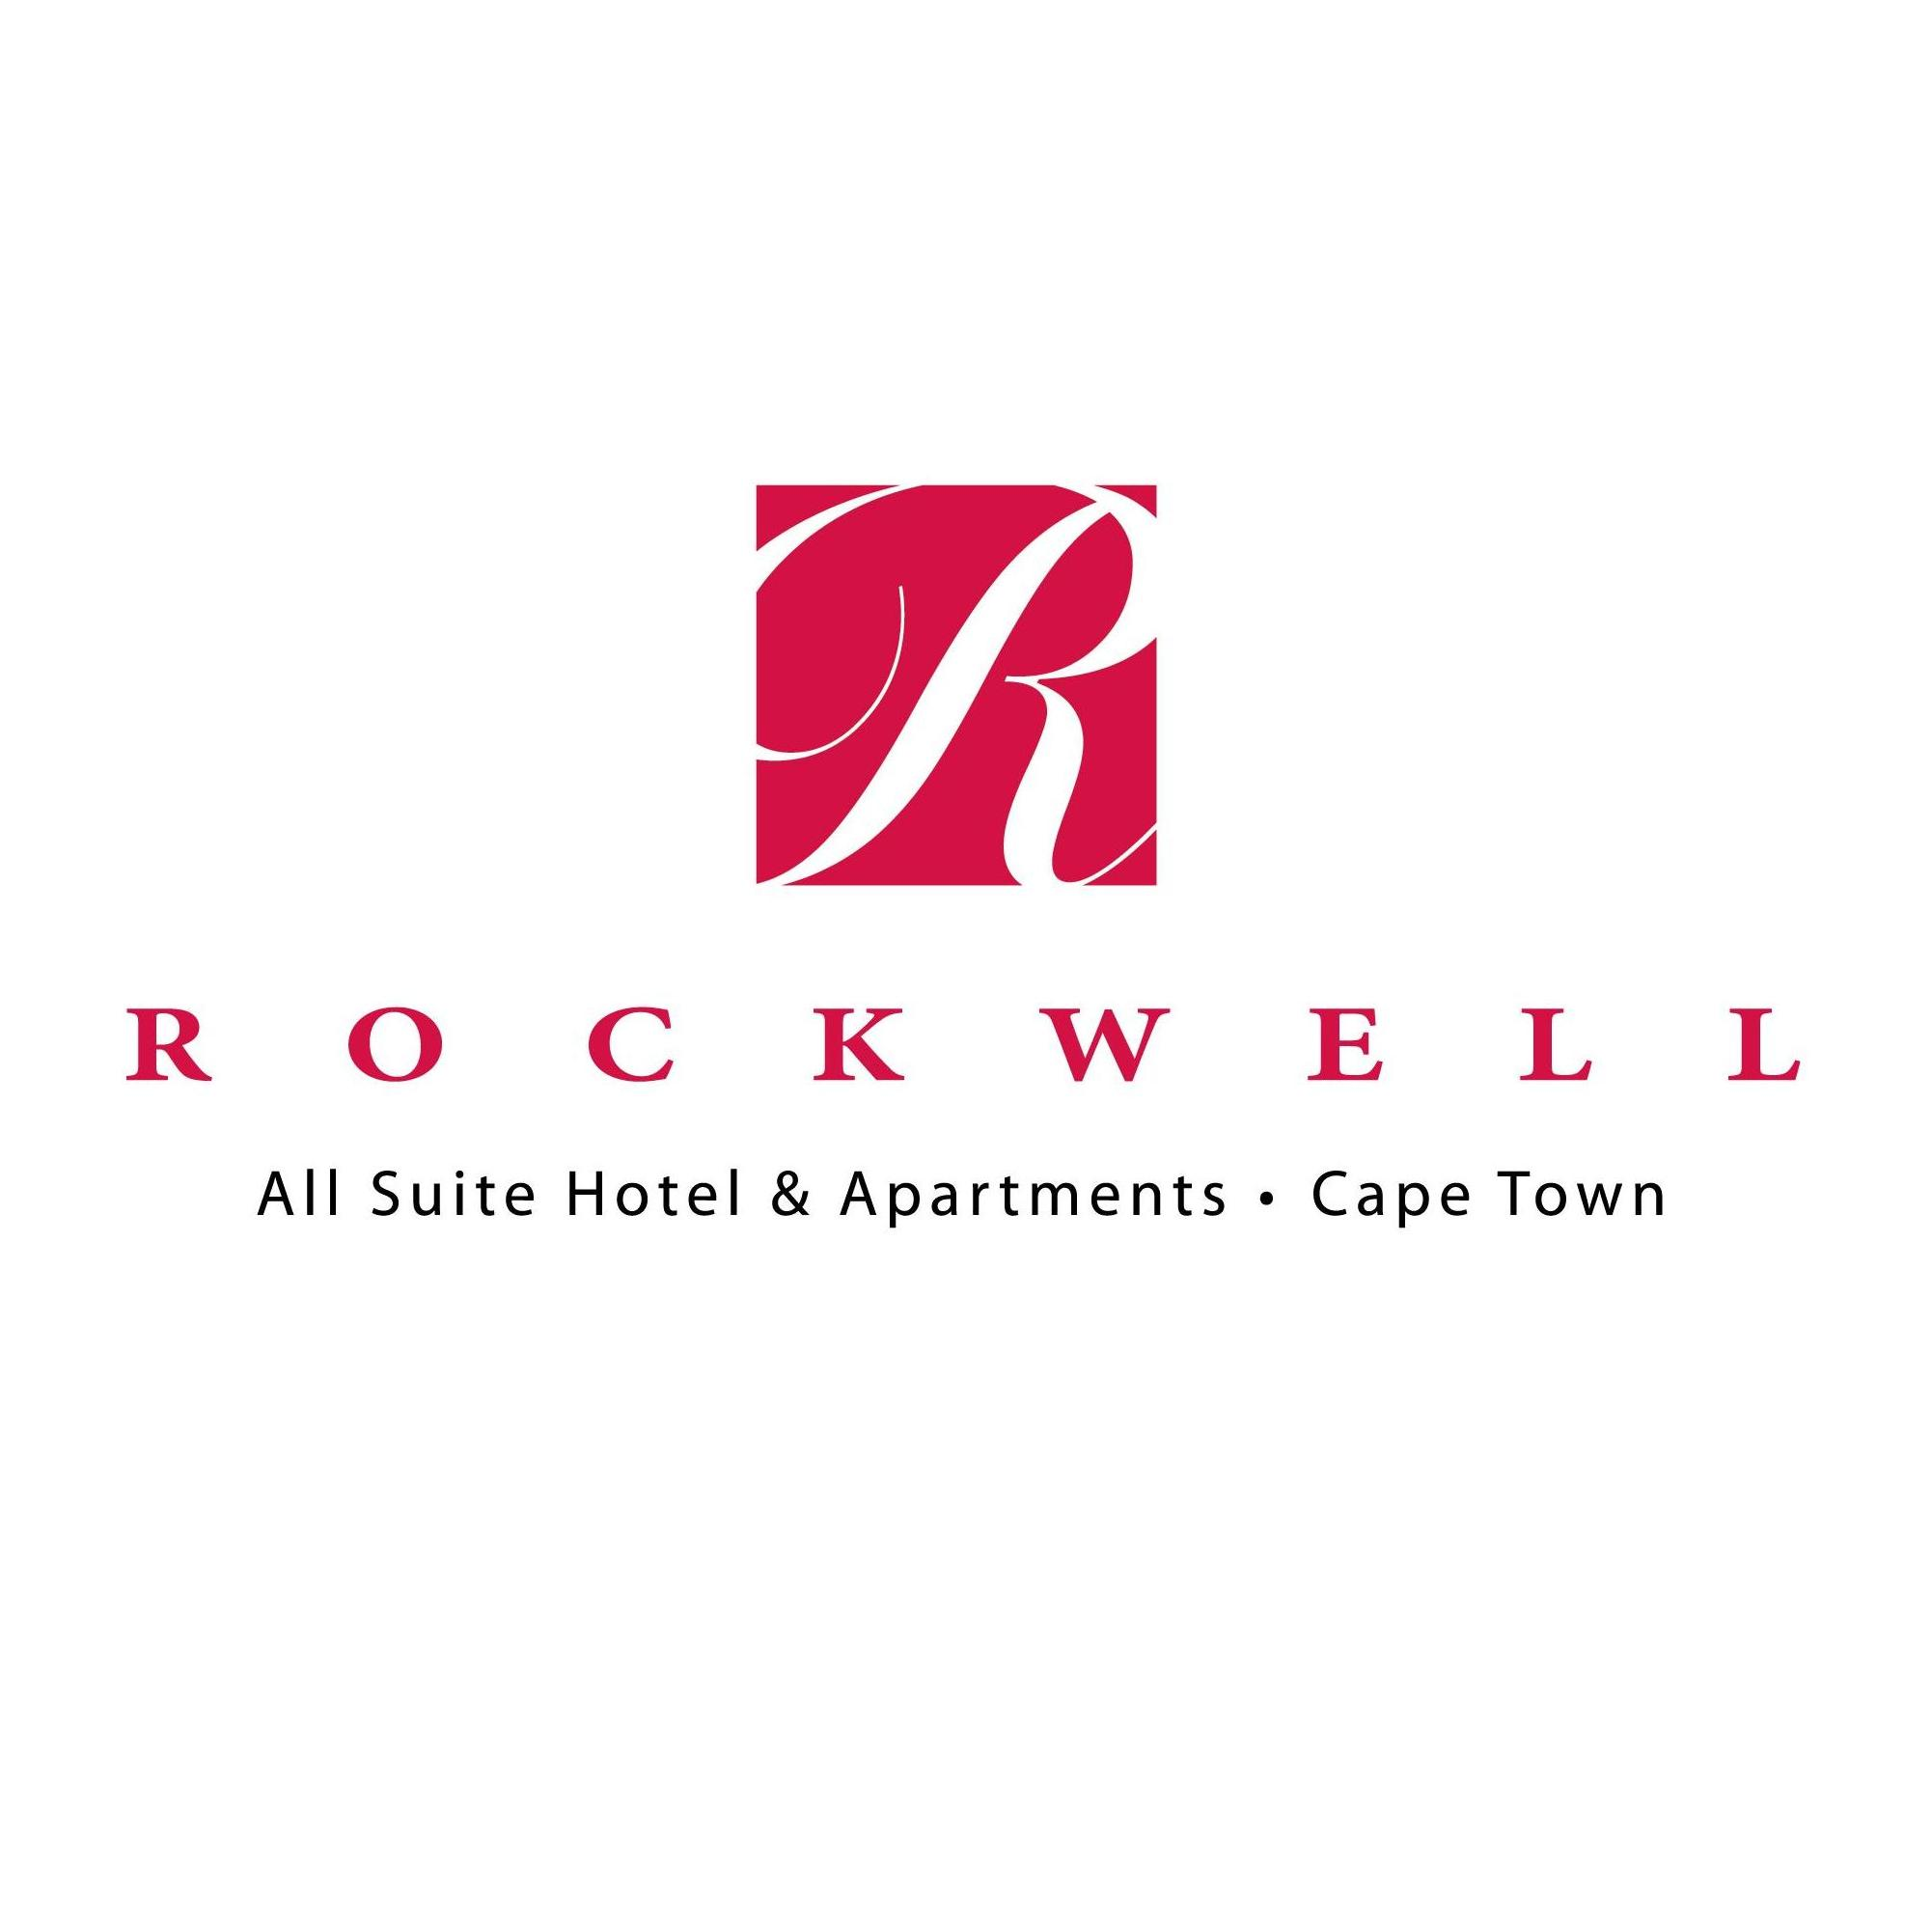 Rockwell All Suite Hotel & Apartments Hotels And Motels